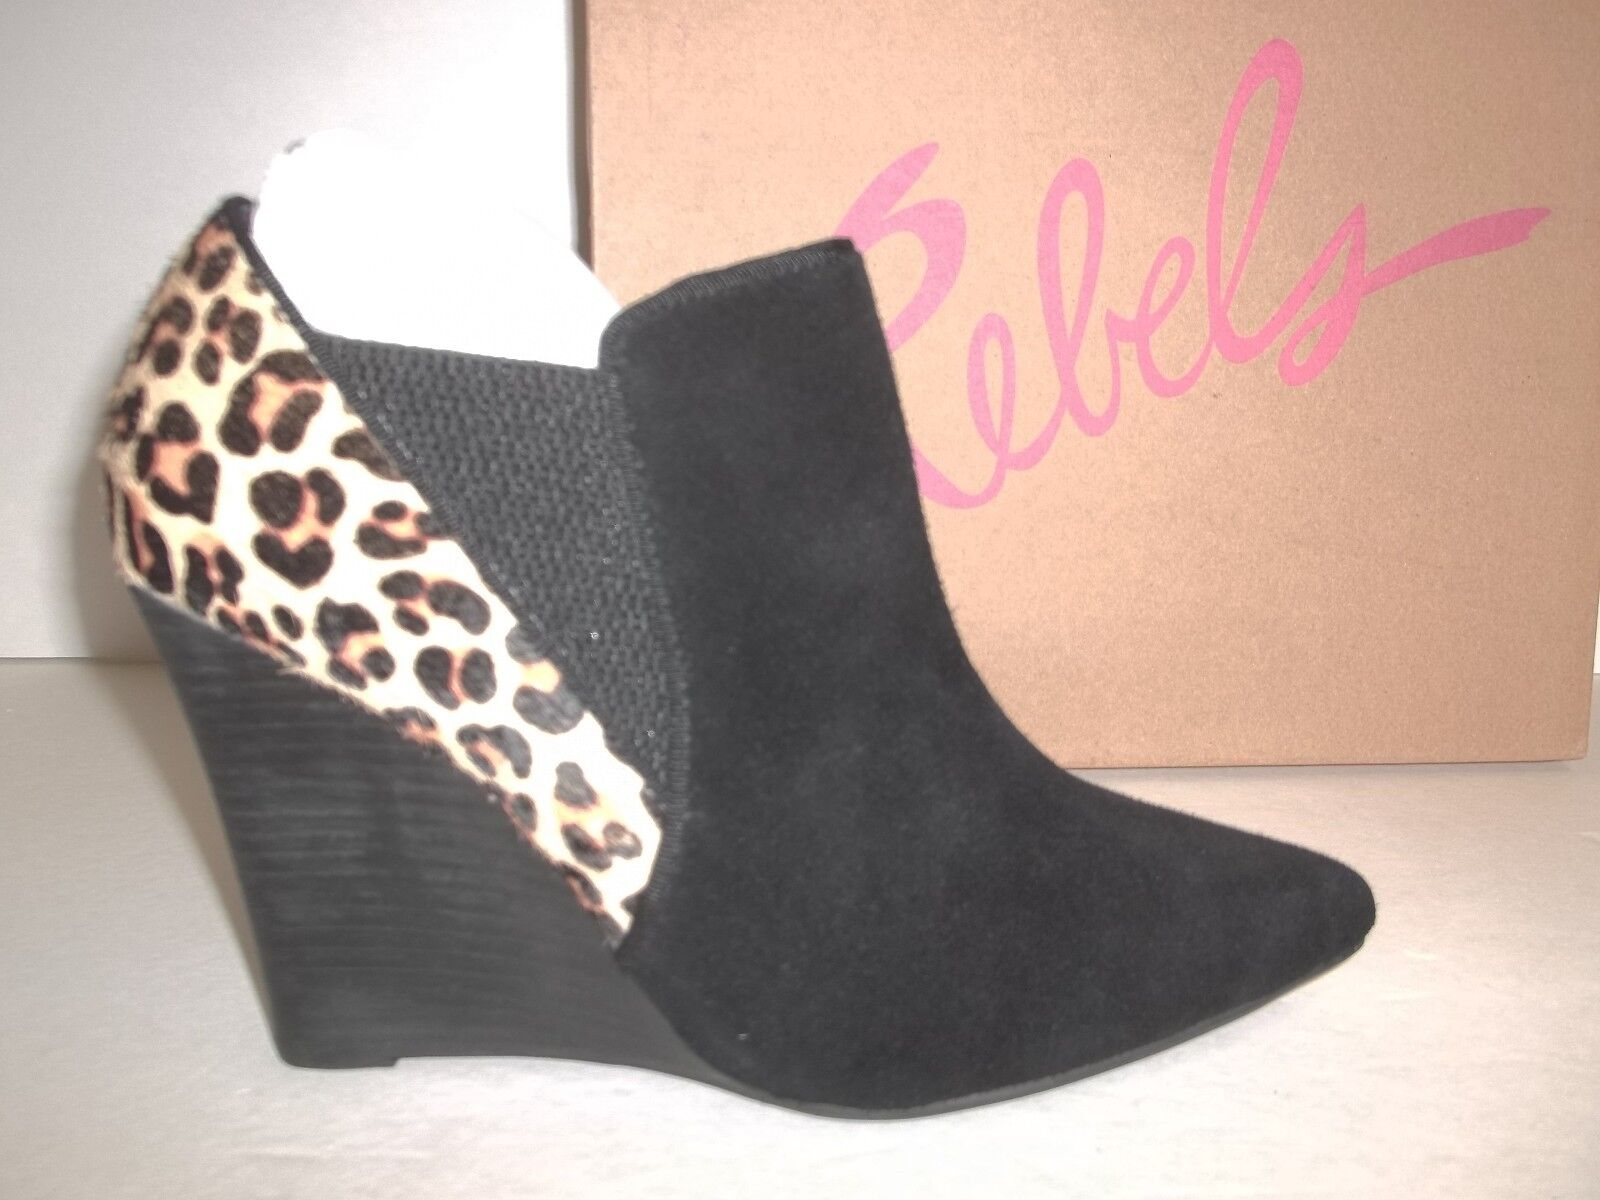 Rebels Size 6 M Fairmont Black Leopard Leather Booties Boots New Womens Shoes